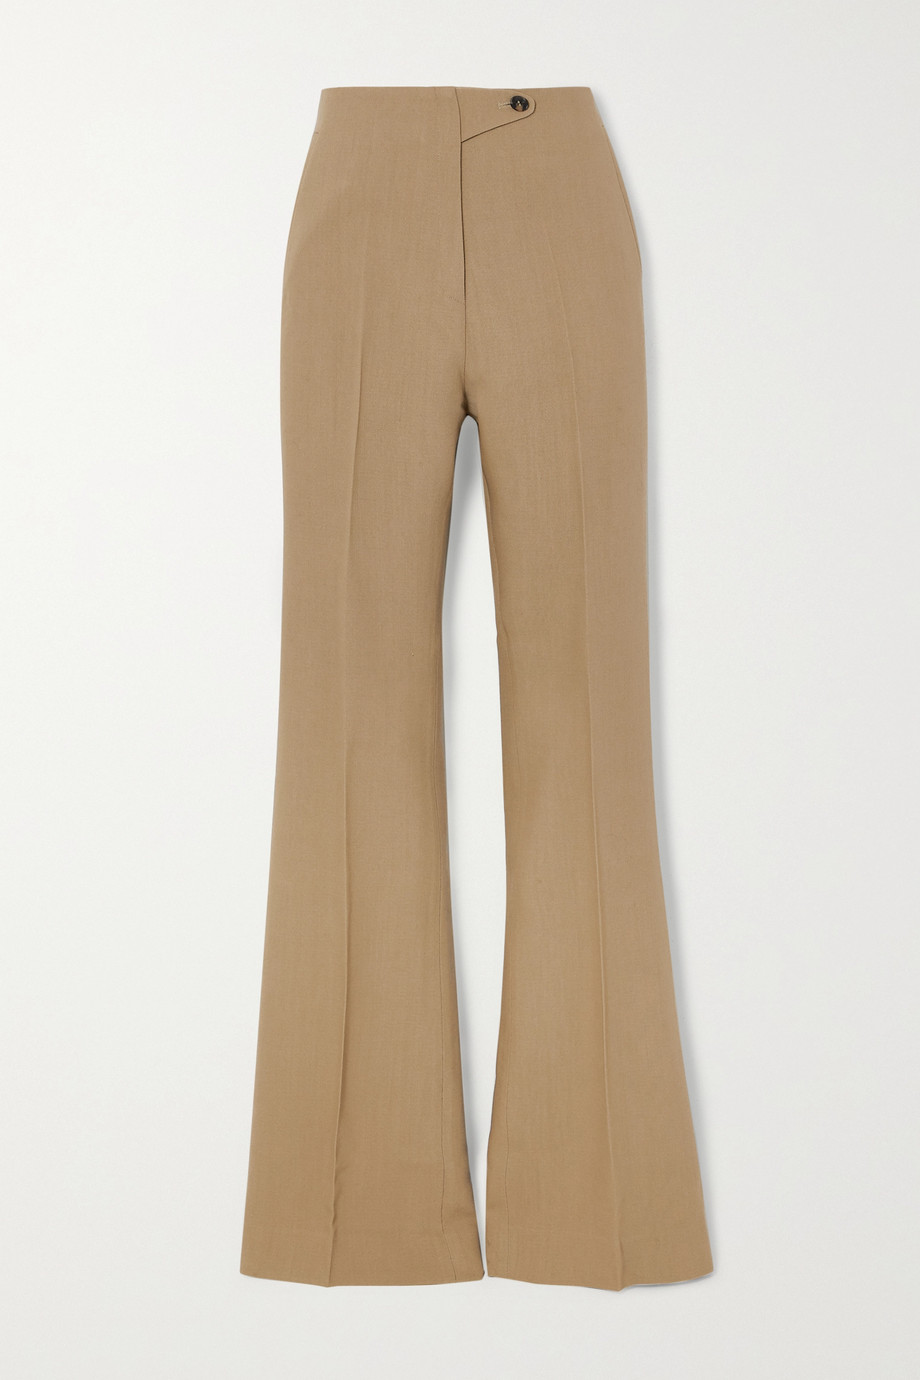 Petar Petrov Haley wool and silk-blend wide-leg pants